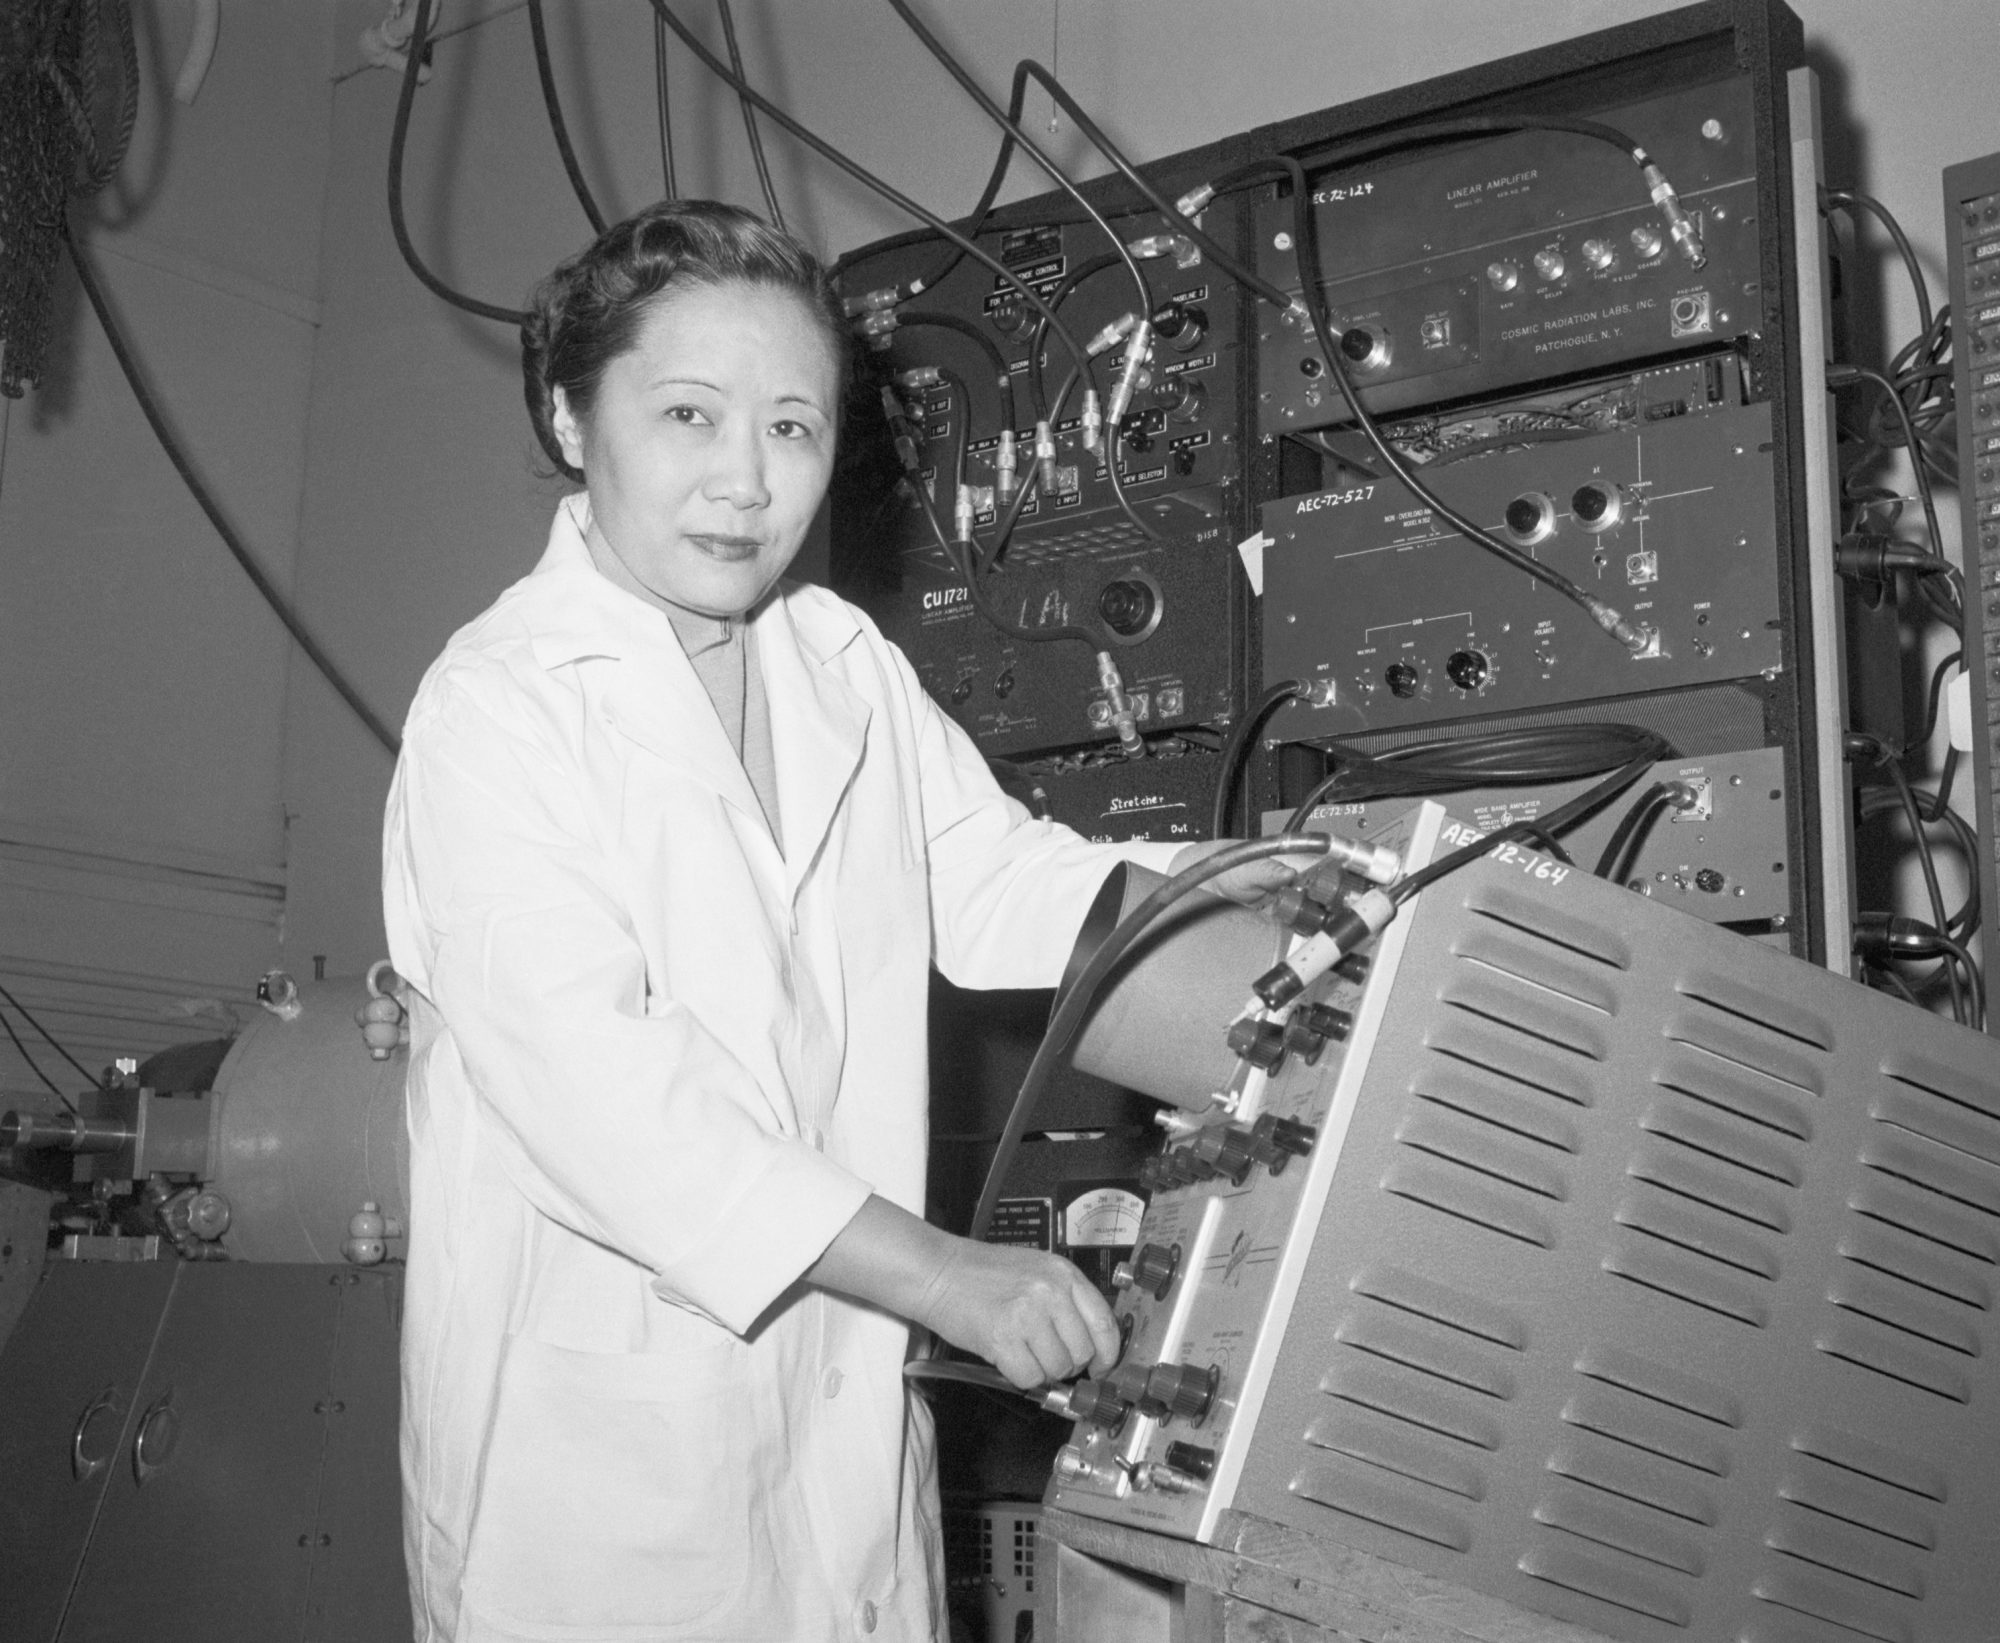 Physics Professor Dr. Chien-Shiung Wu in a laboratory at Columbia University